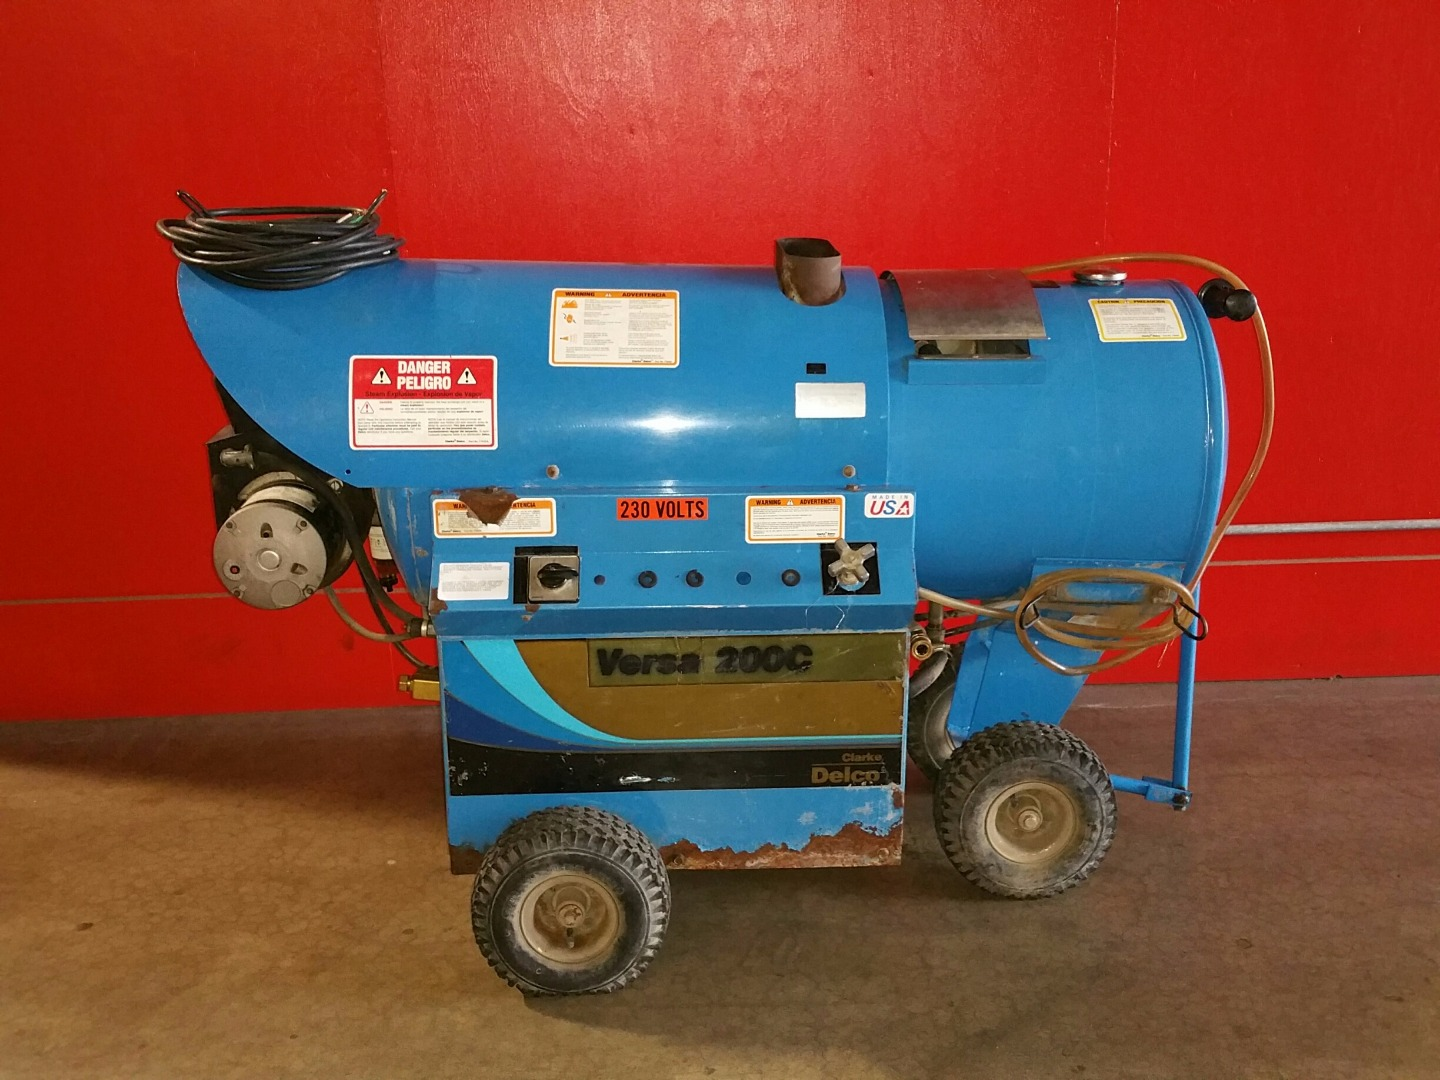 Used Delco Versa 200c Hot Water Diesel 3 5gpm   1200psi Pressure Washer